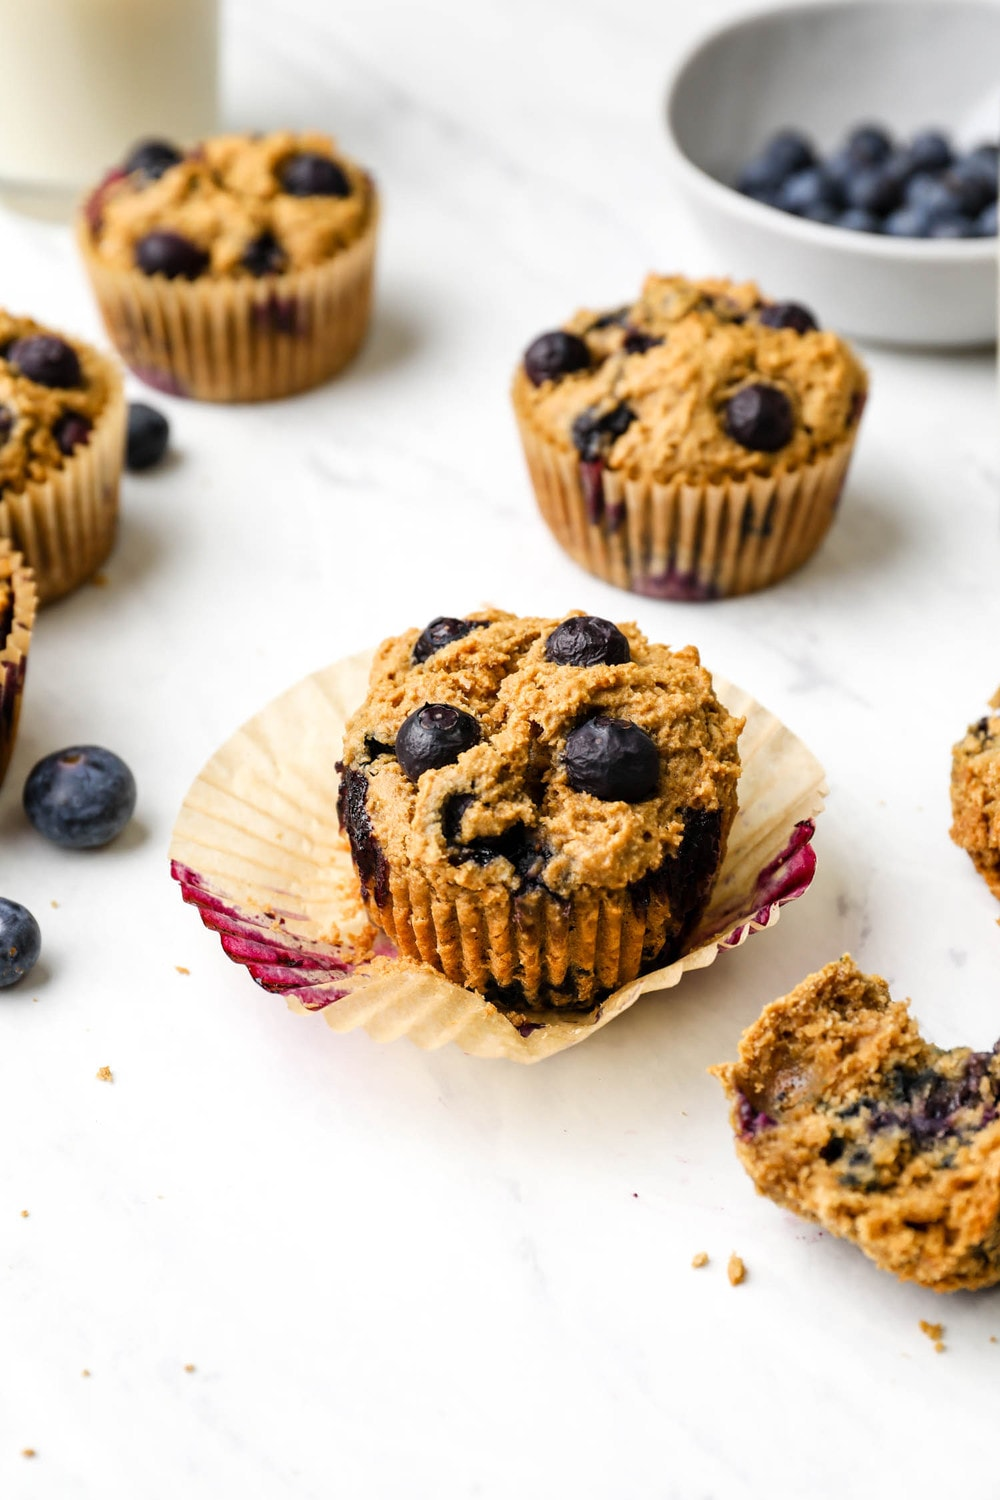 A Gluten Free Blueberry Muffins with the wrapper removed.